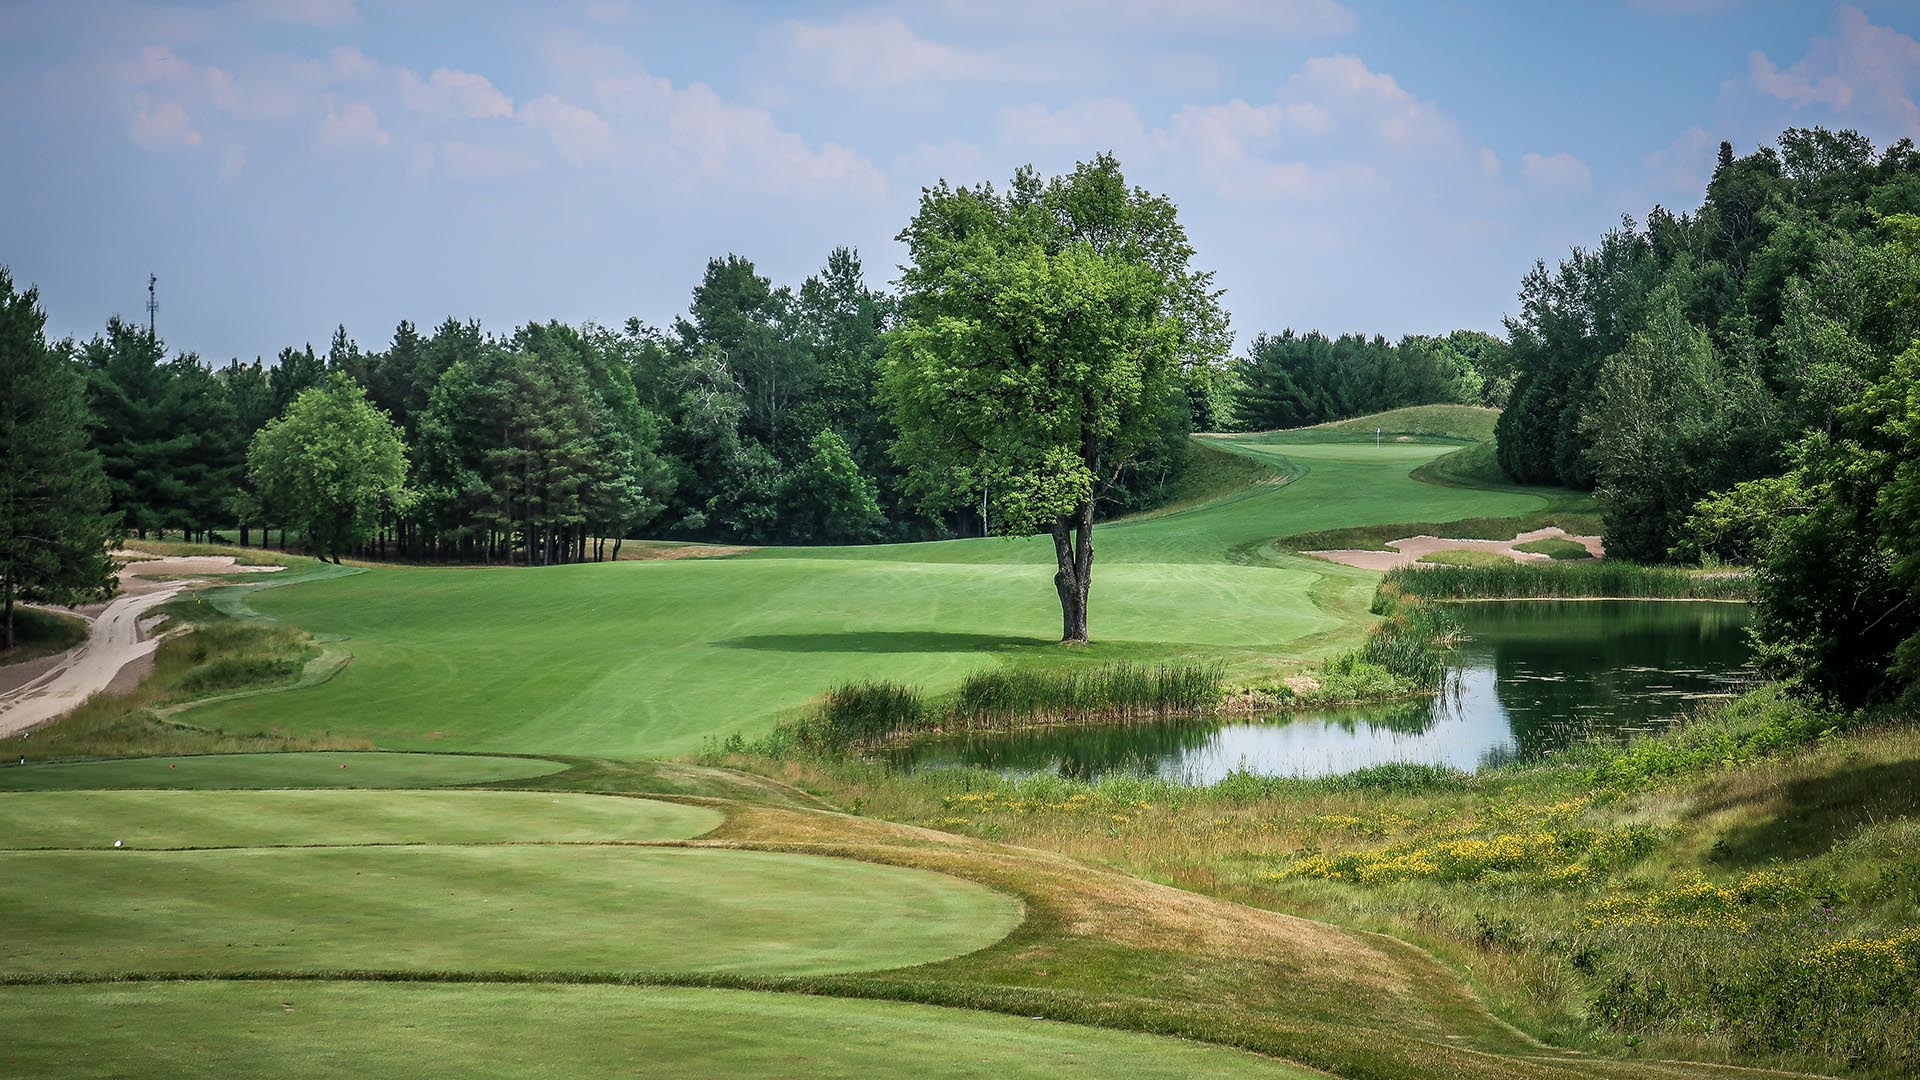 TPC Toronto at Osprey Valley: A Composite Routing